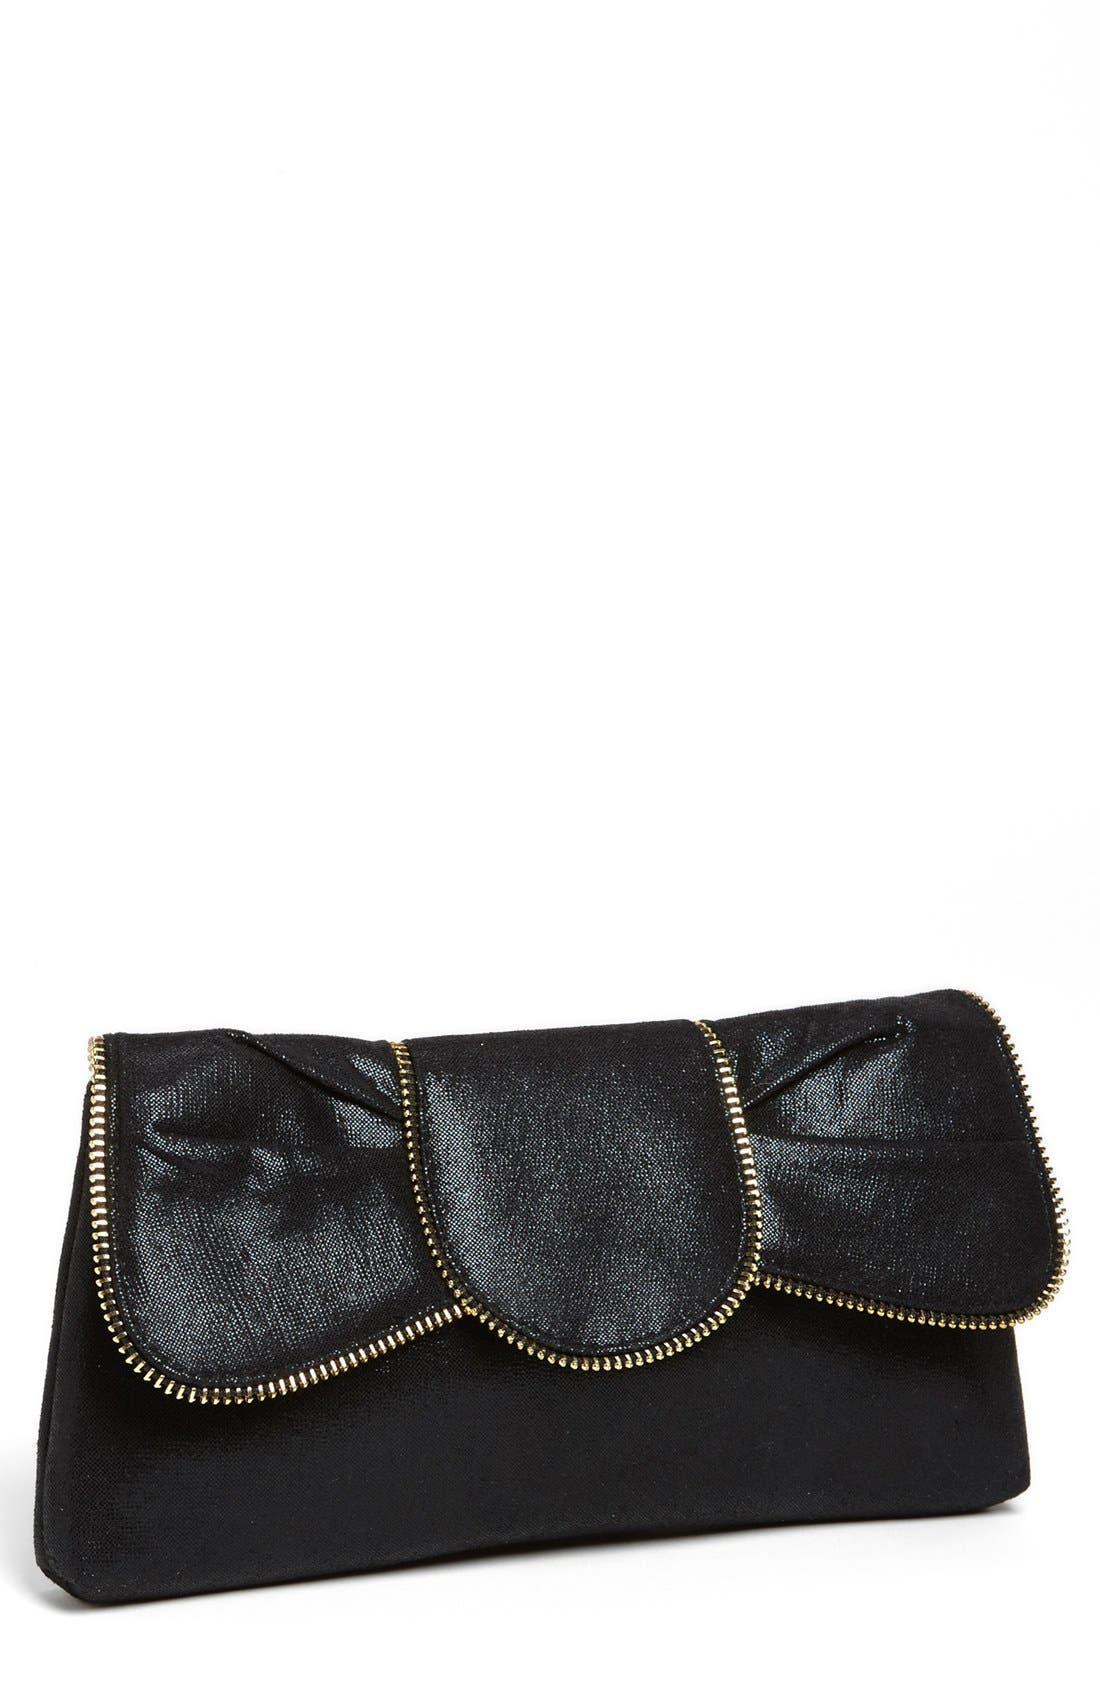 Main Image - Magid Bow Clutch